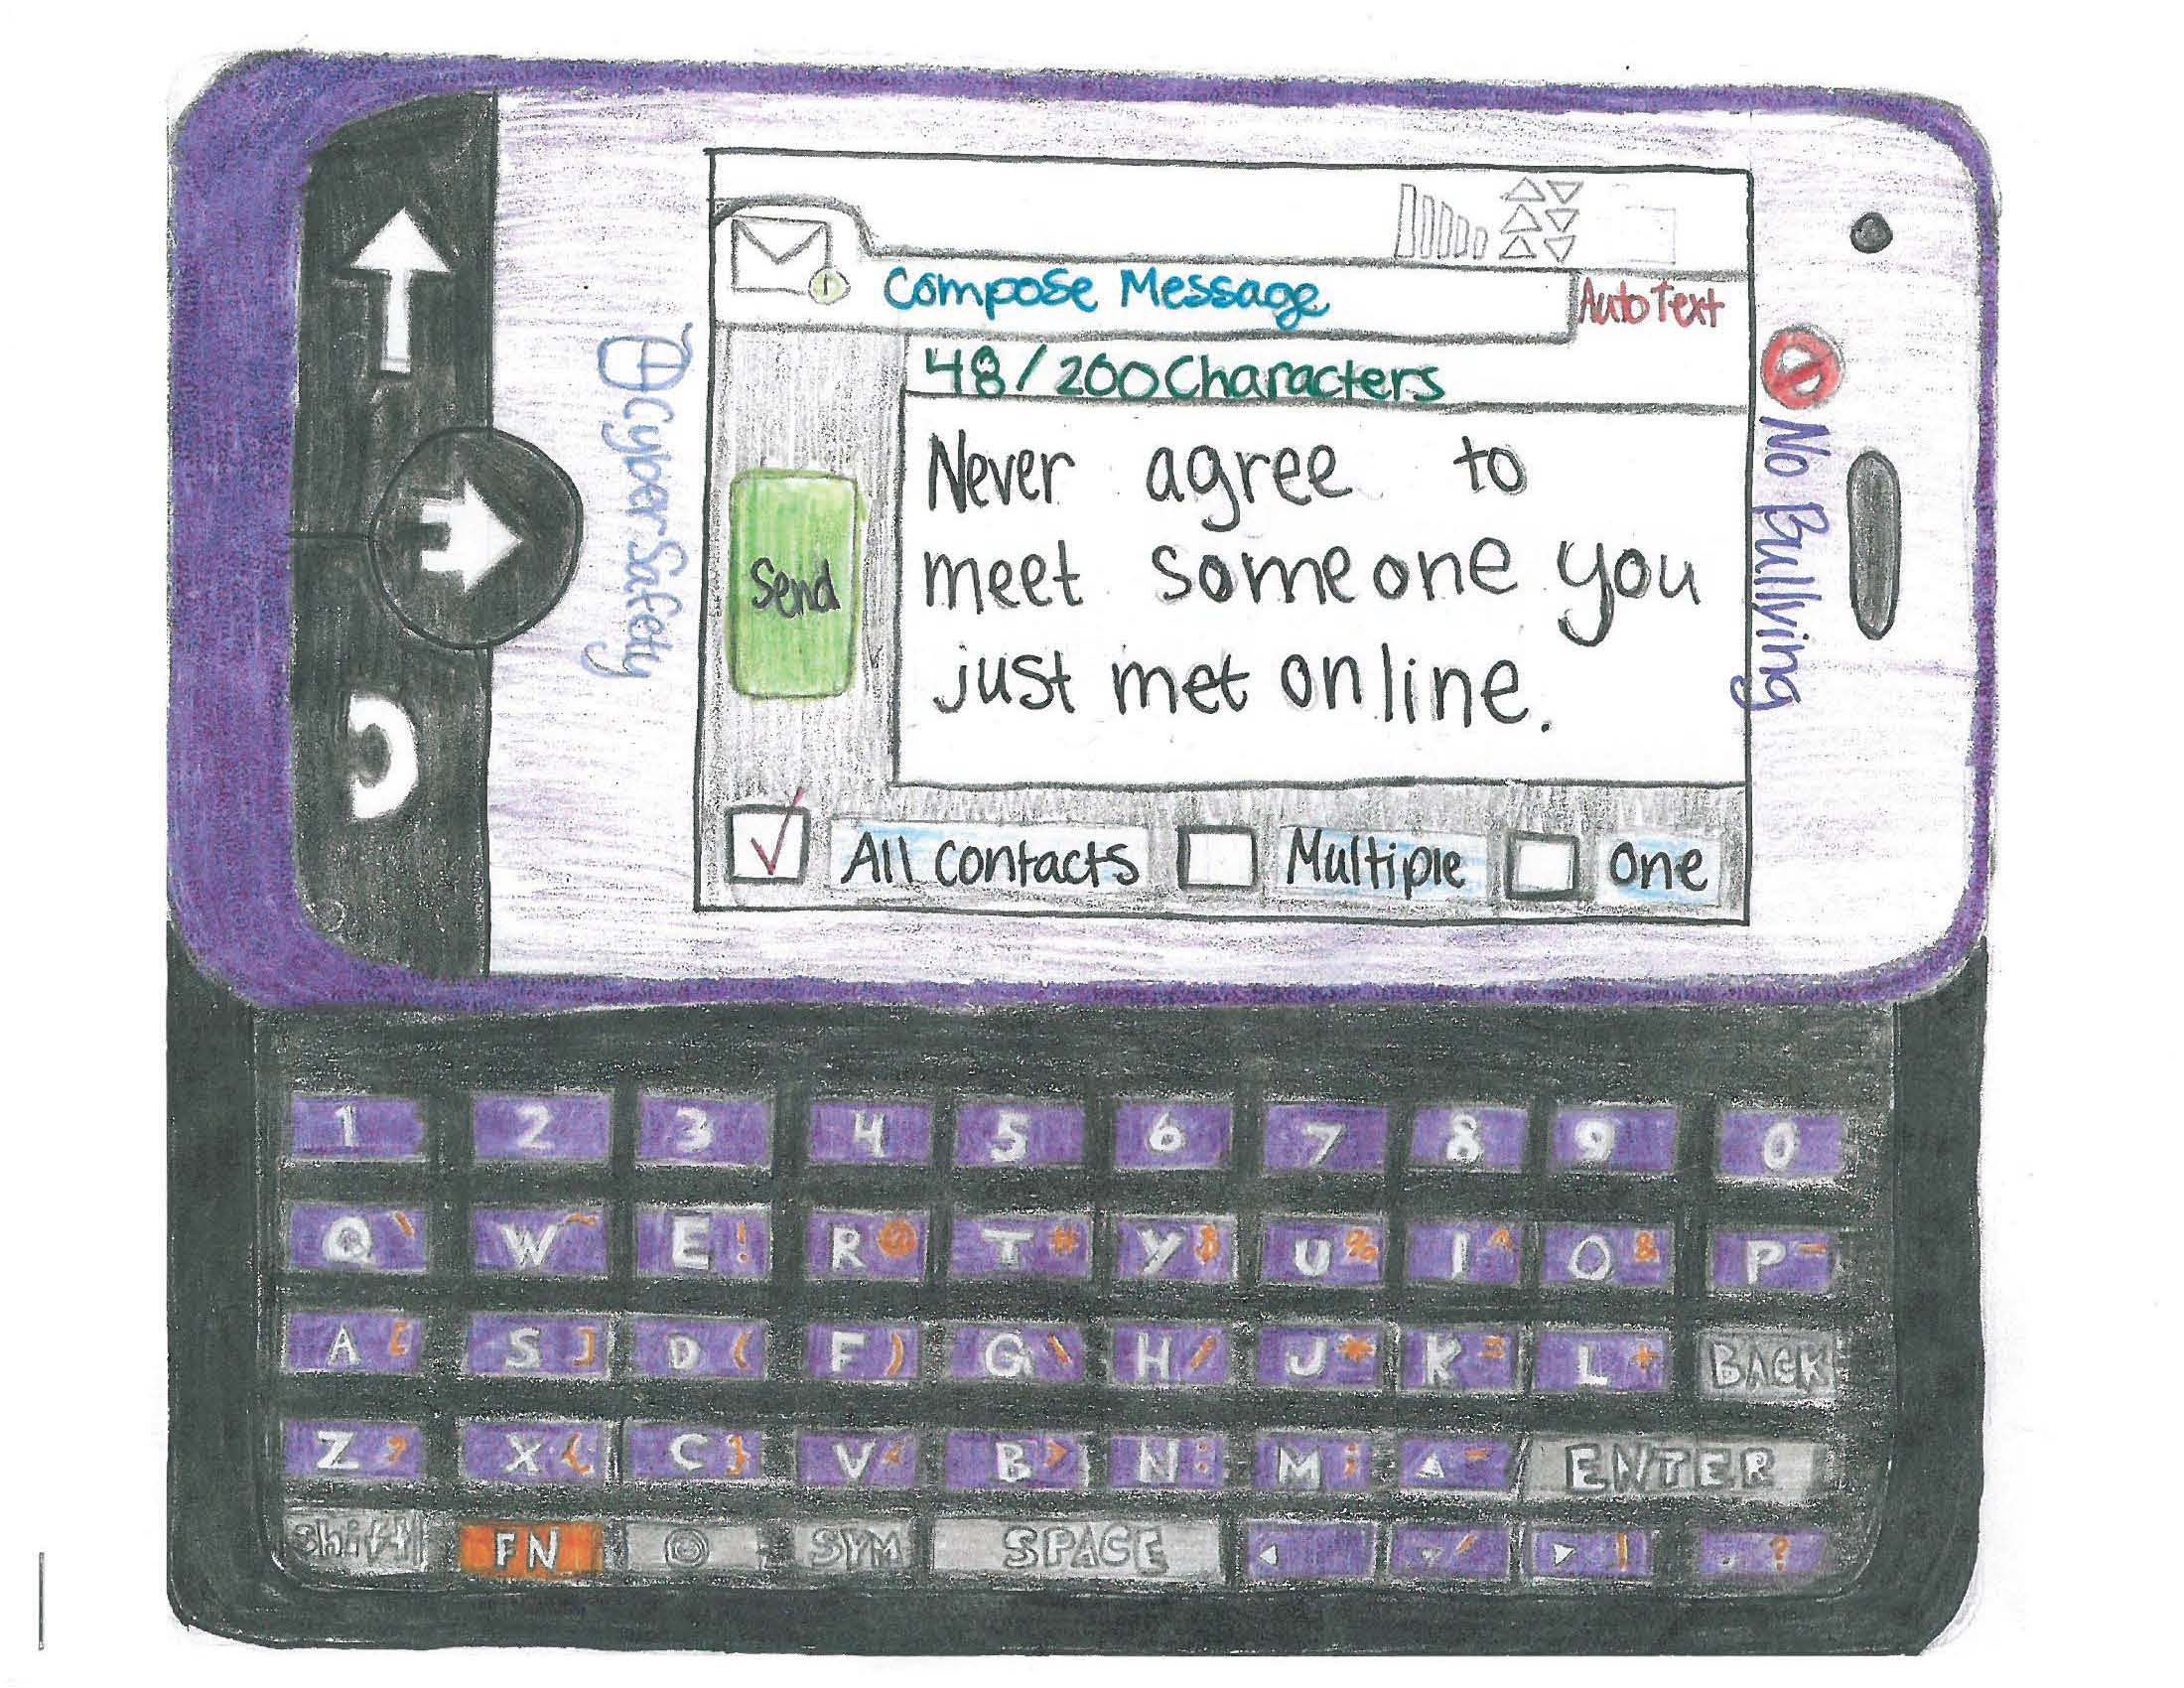 Drawn poster internet safety Spread only Online jpg about